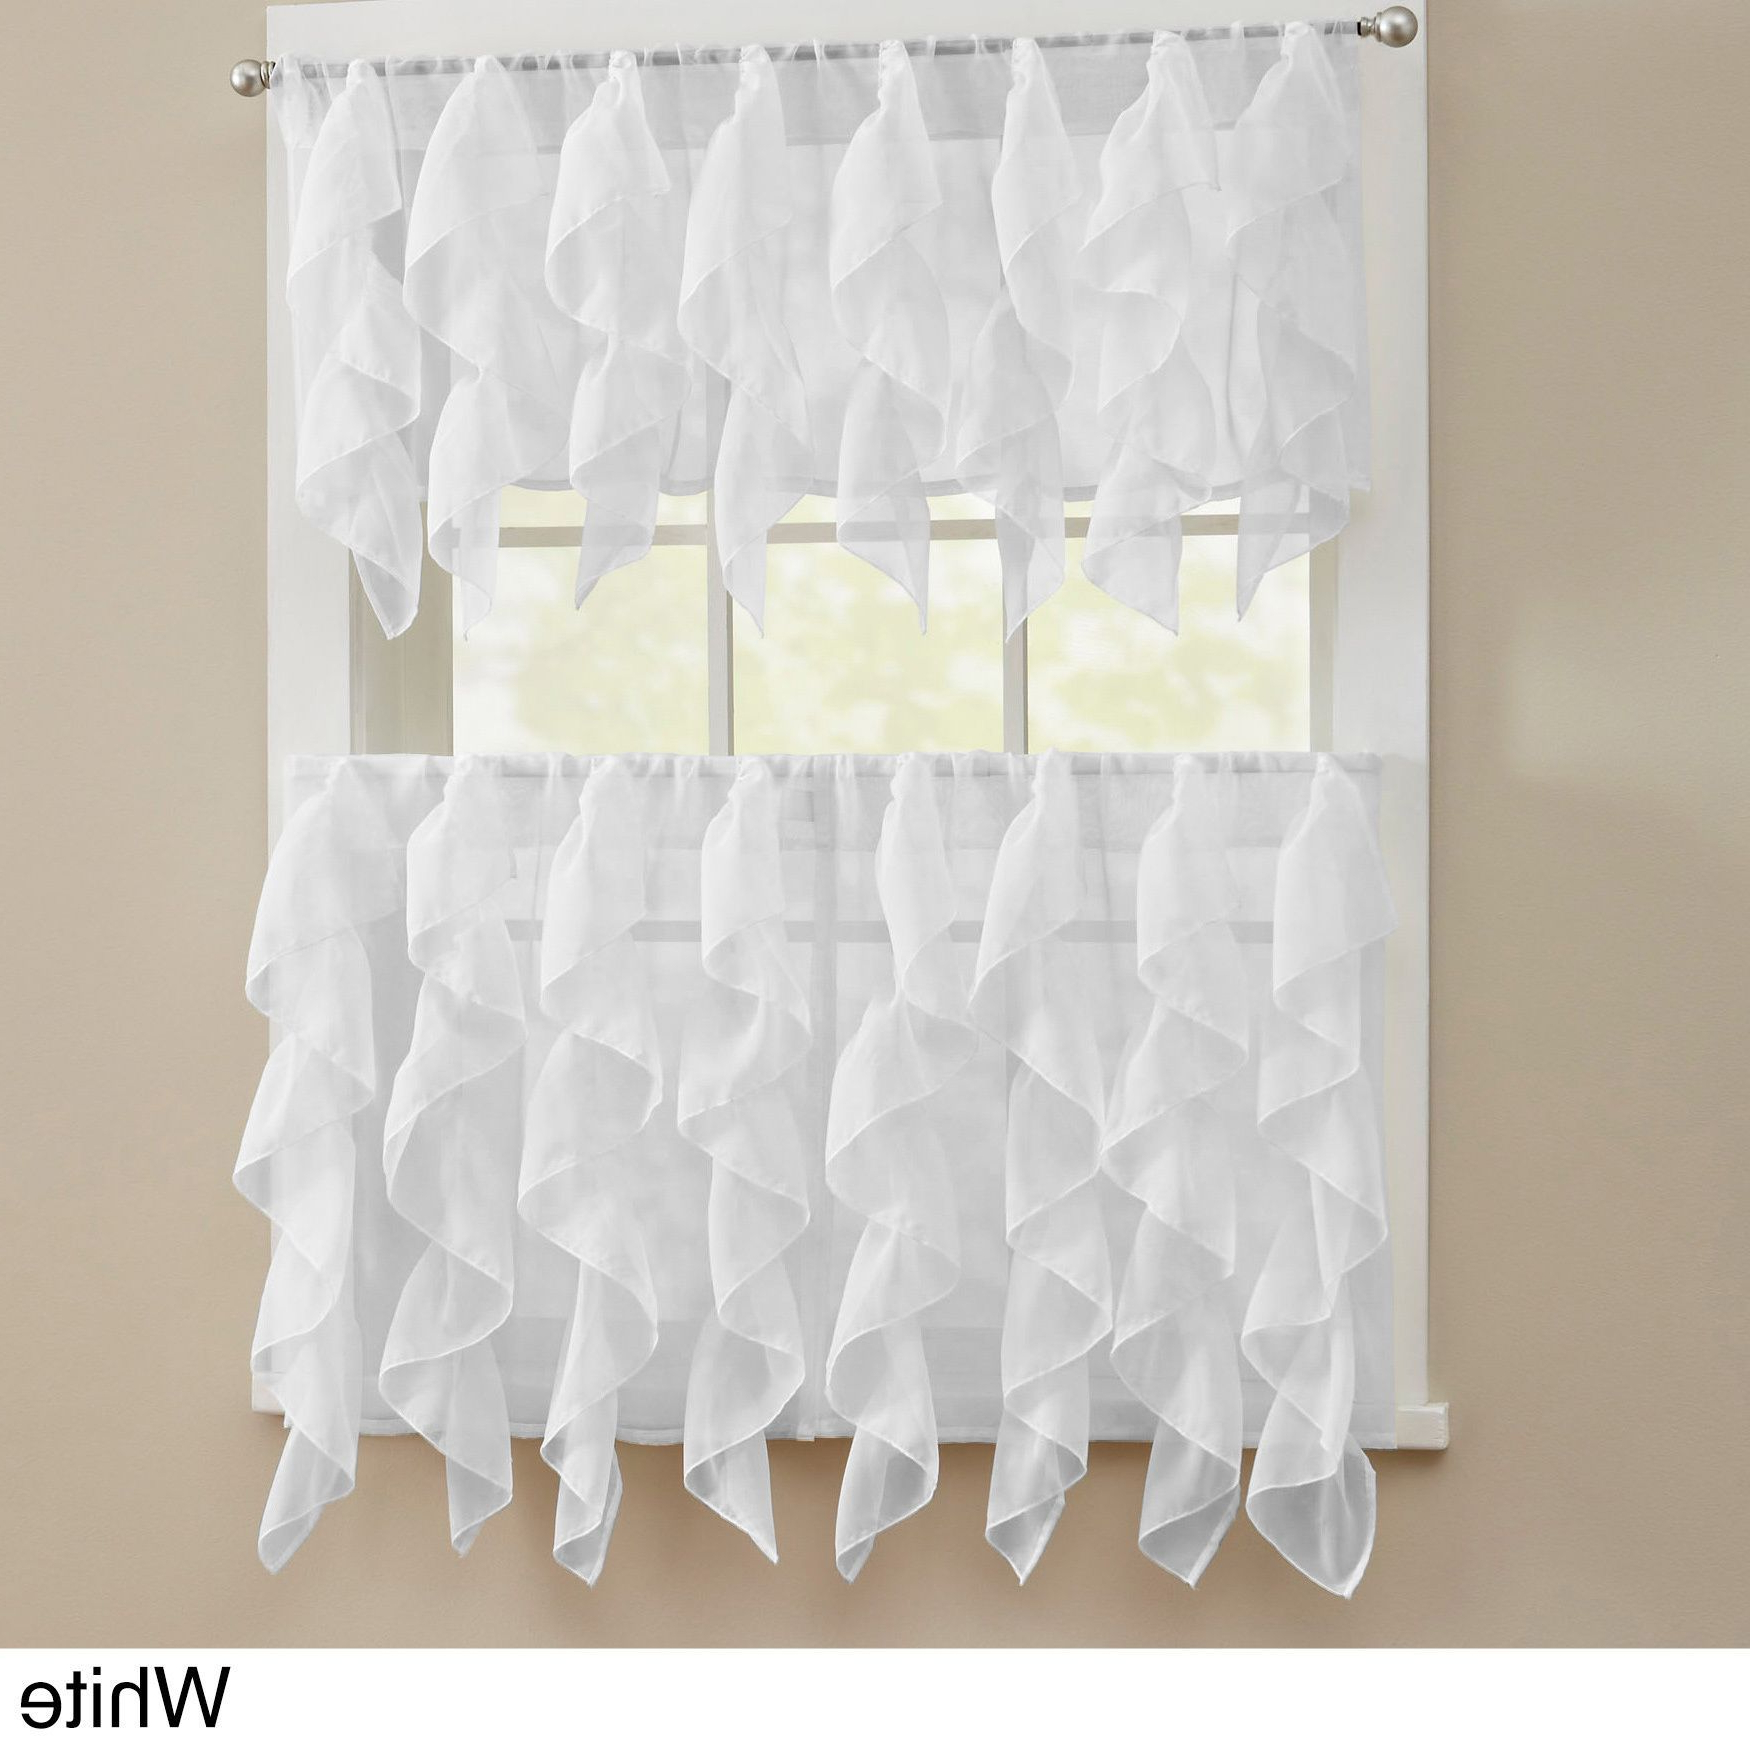 Best And Newest Chic Sheer Voile Vertical Ruffled Tier Window Curtain Inside Sheer Voile Waterfall Ruffled Tier Single Curtain Panels (View 2 of 20)